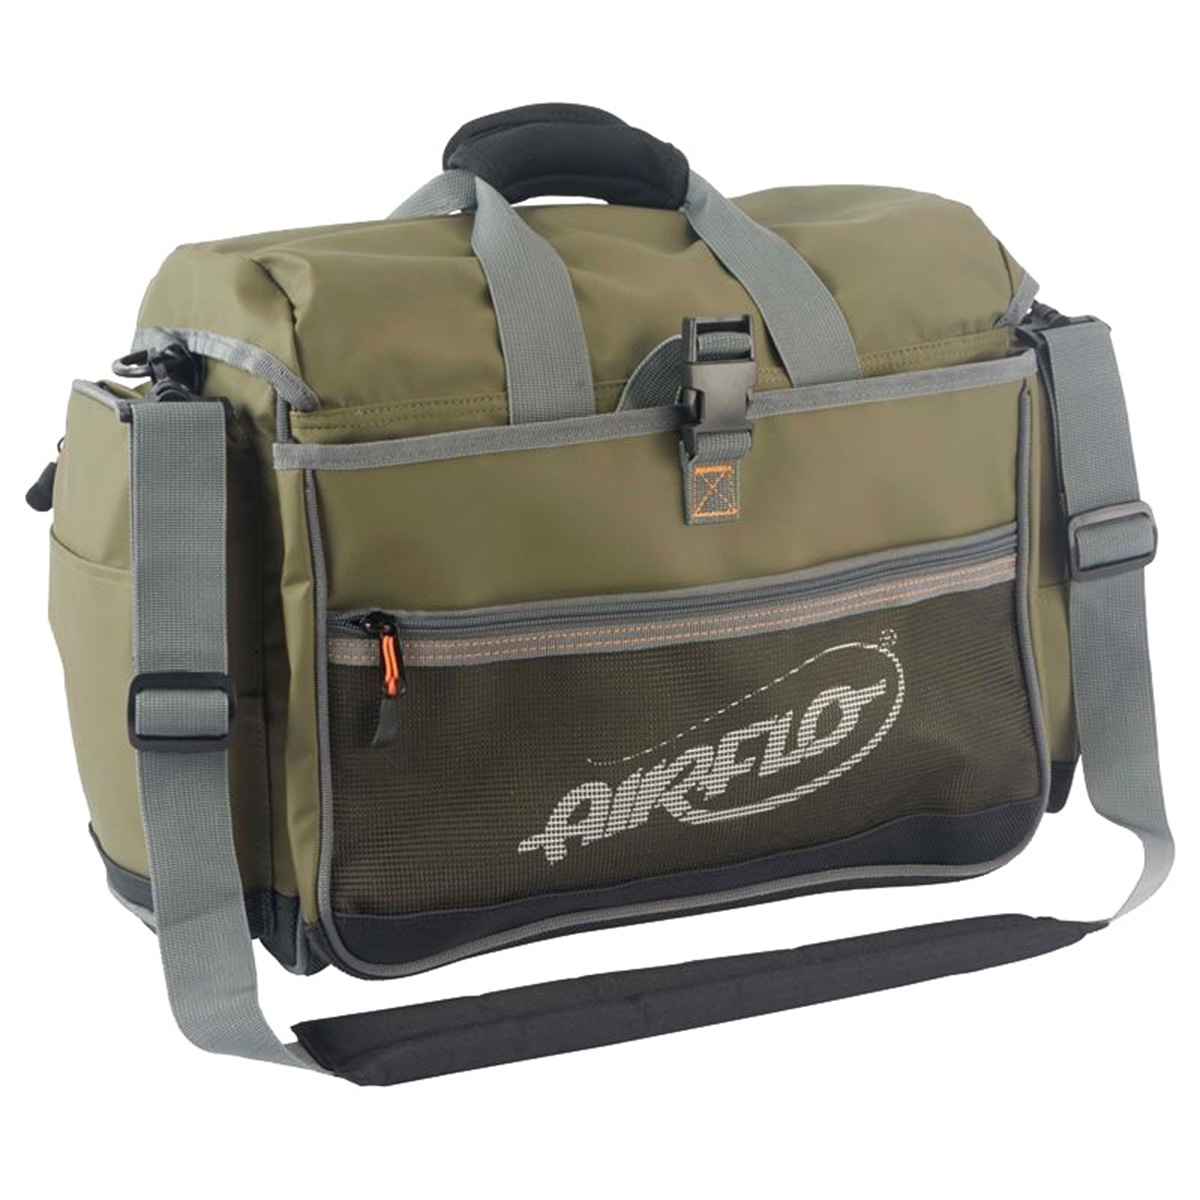 Airflo fly dri carryall large 60l fishing bags for Fly fishing luggage